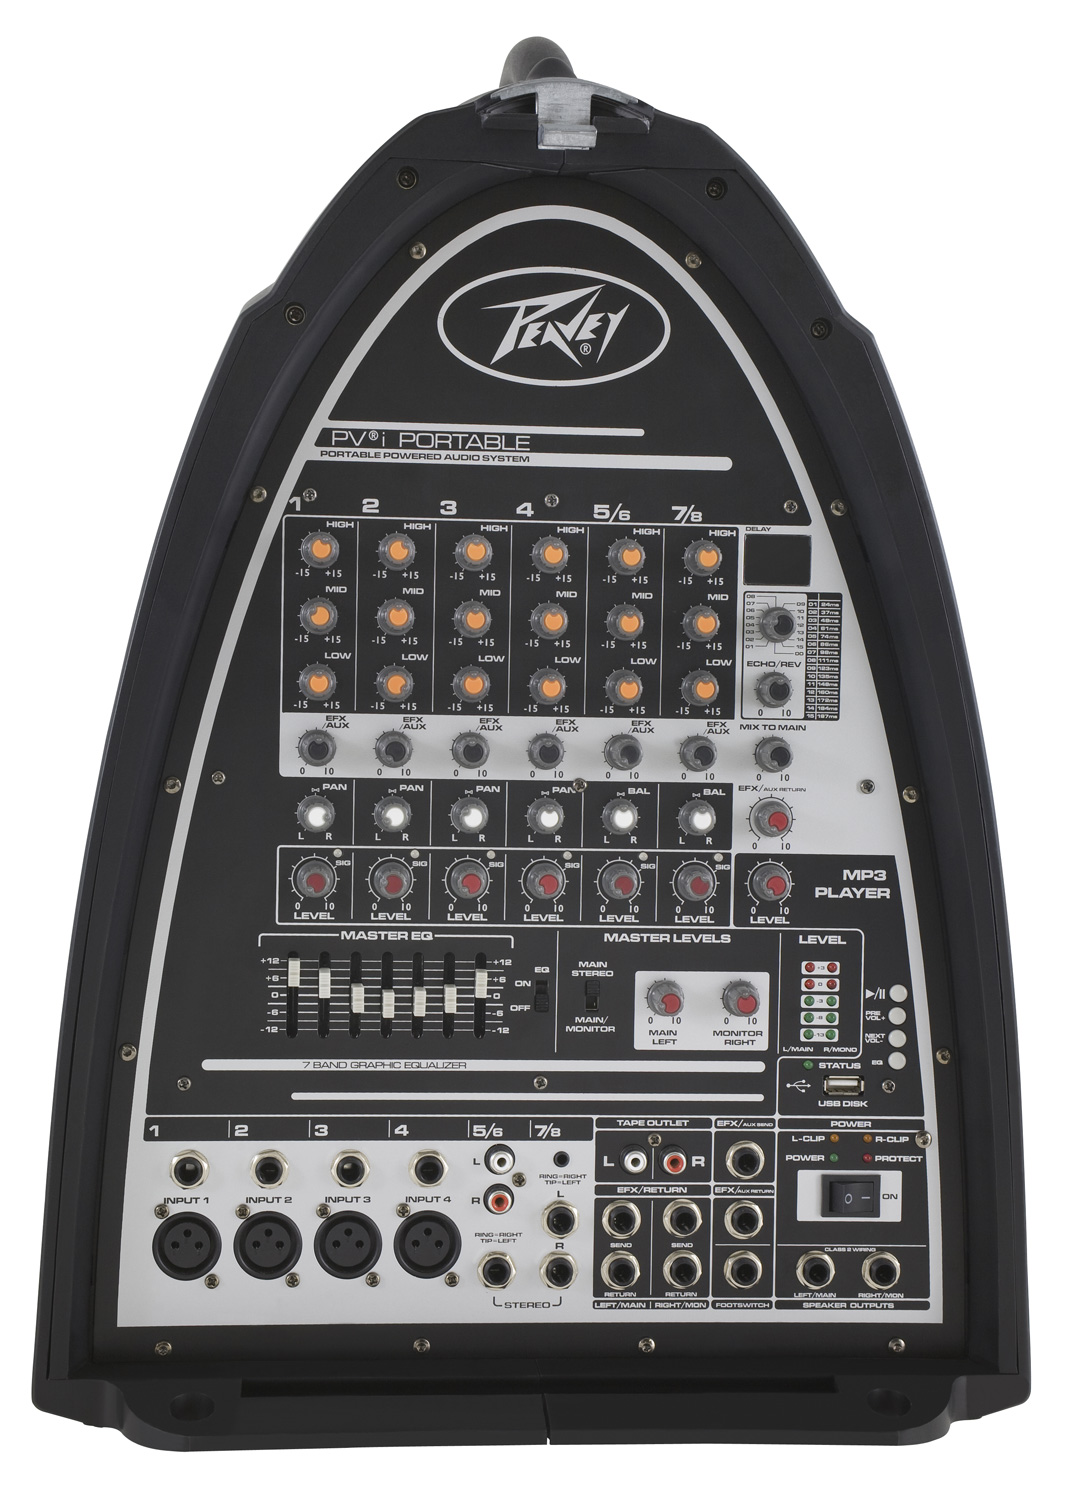 peavey pvi portable pro audio dj compact pa system 300w pa speaker amp 8ch mixer pev13 3608460 rs. Black Bedroom Furniture Sets. Home Design Ideas